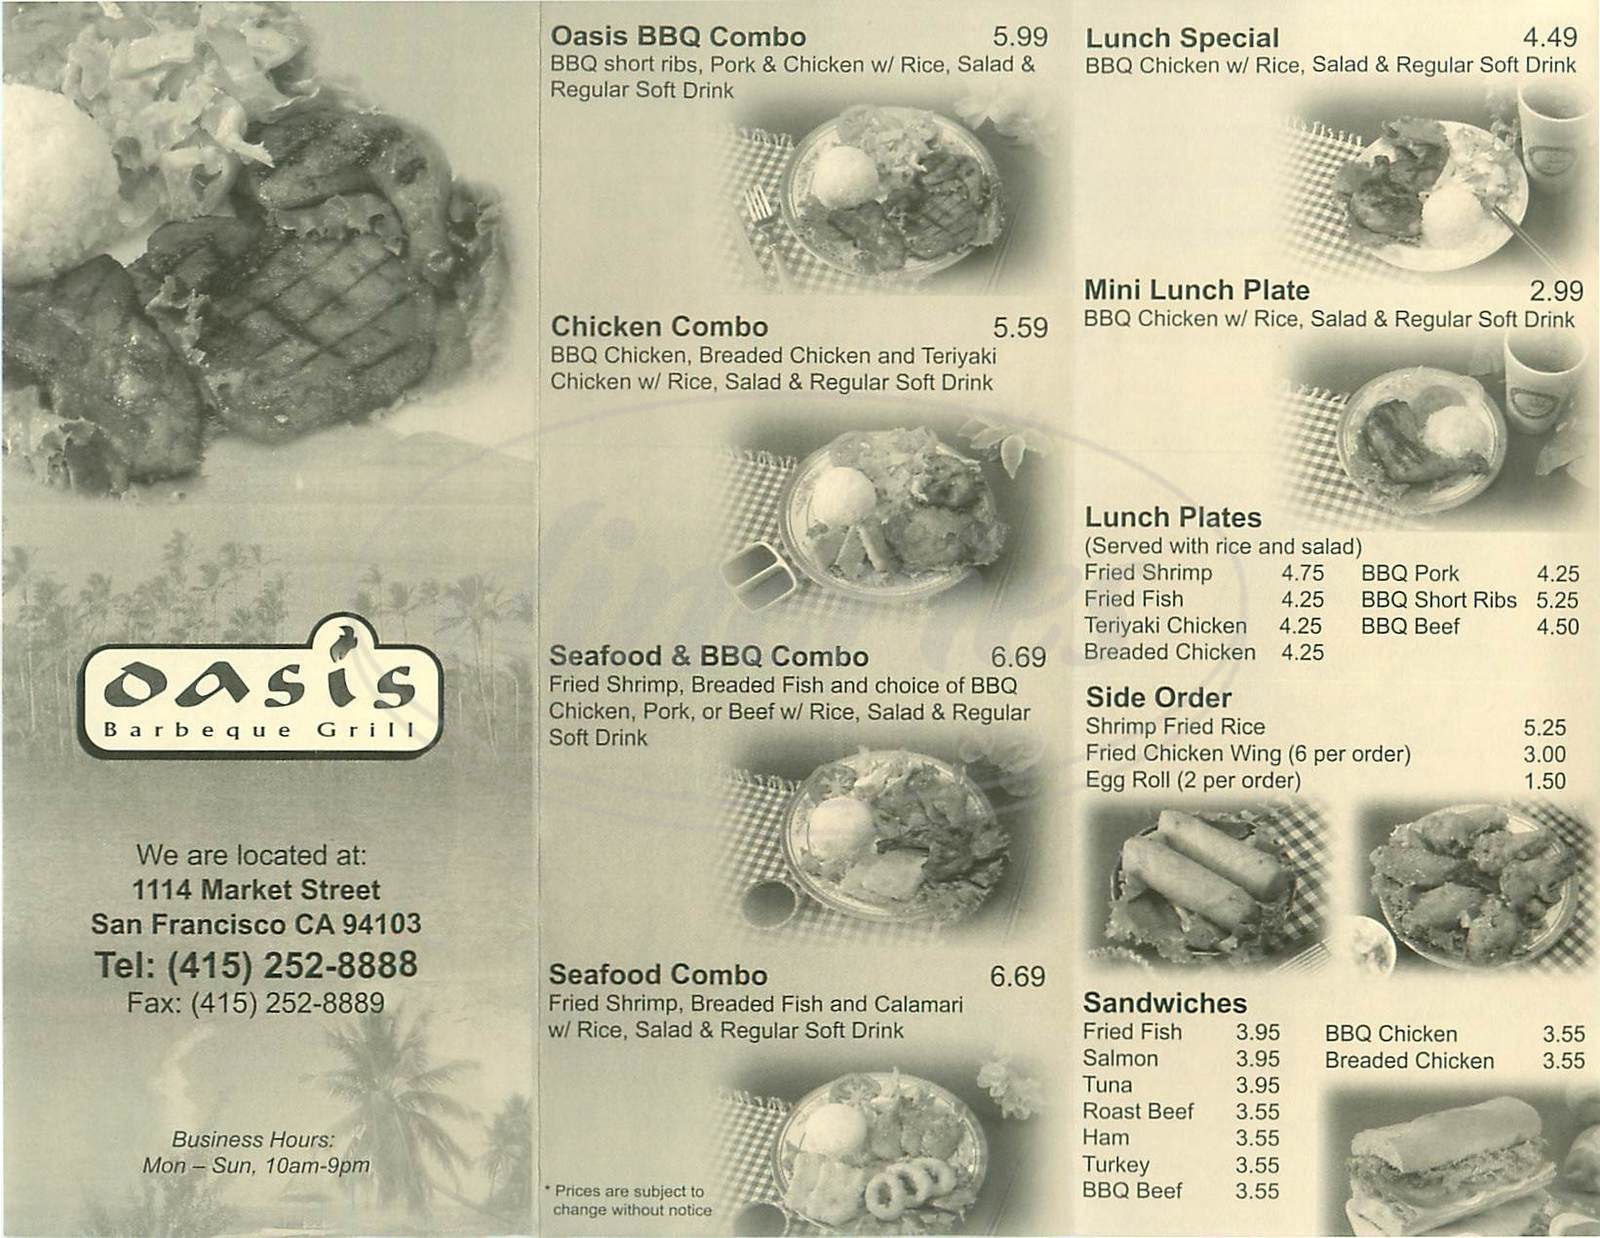 menu for Oasis Barbeque Grill